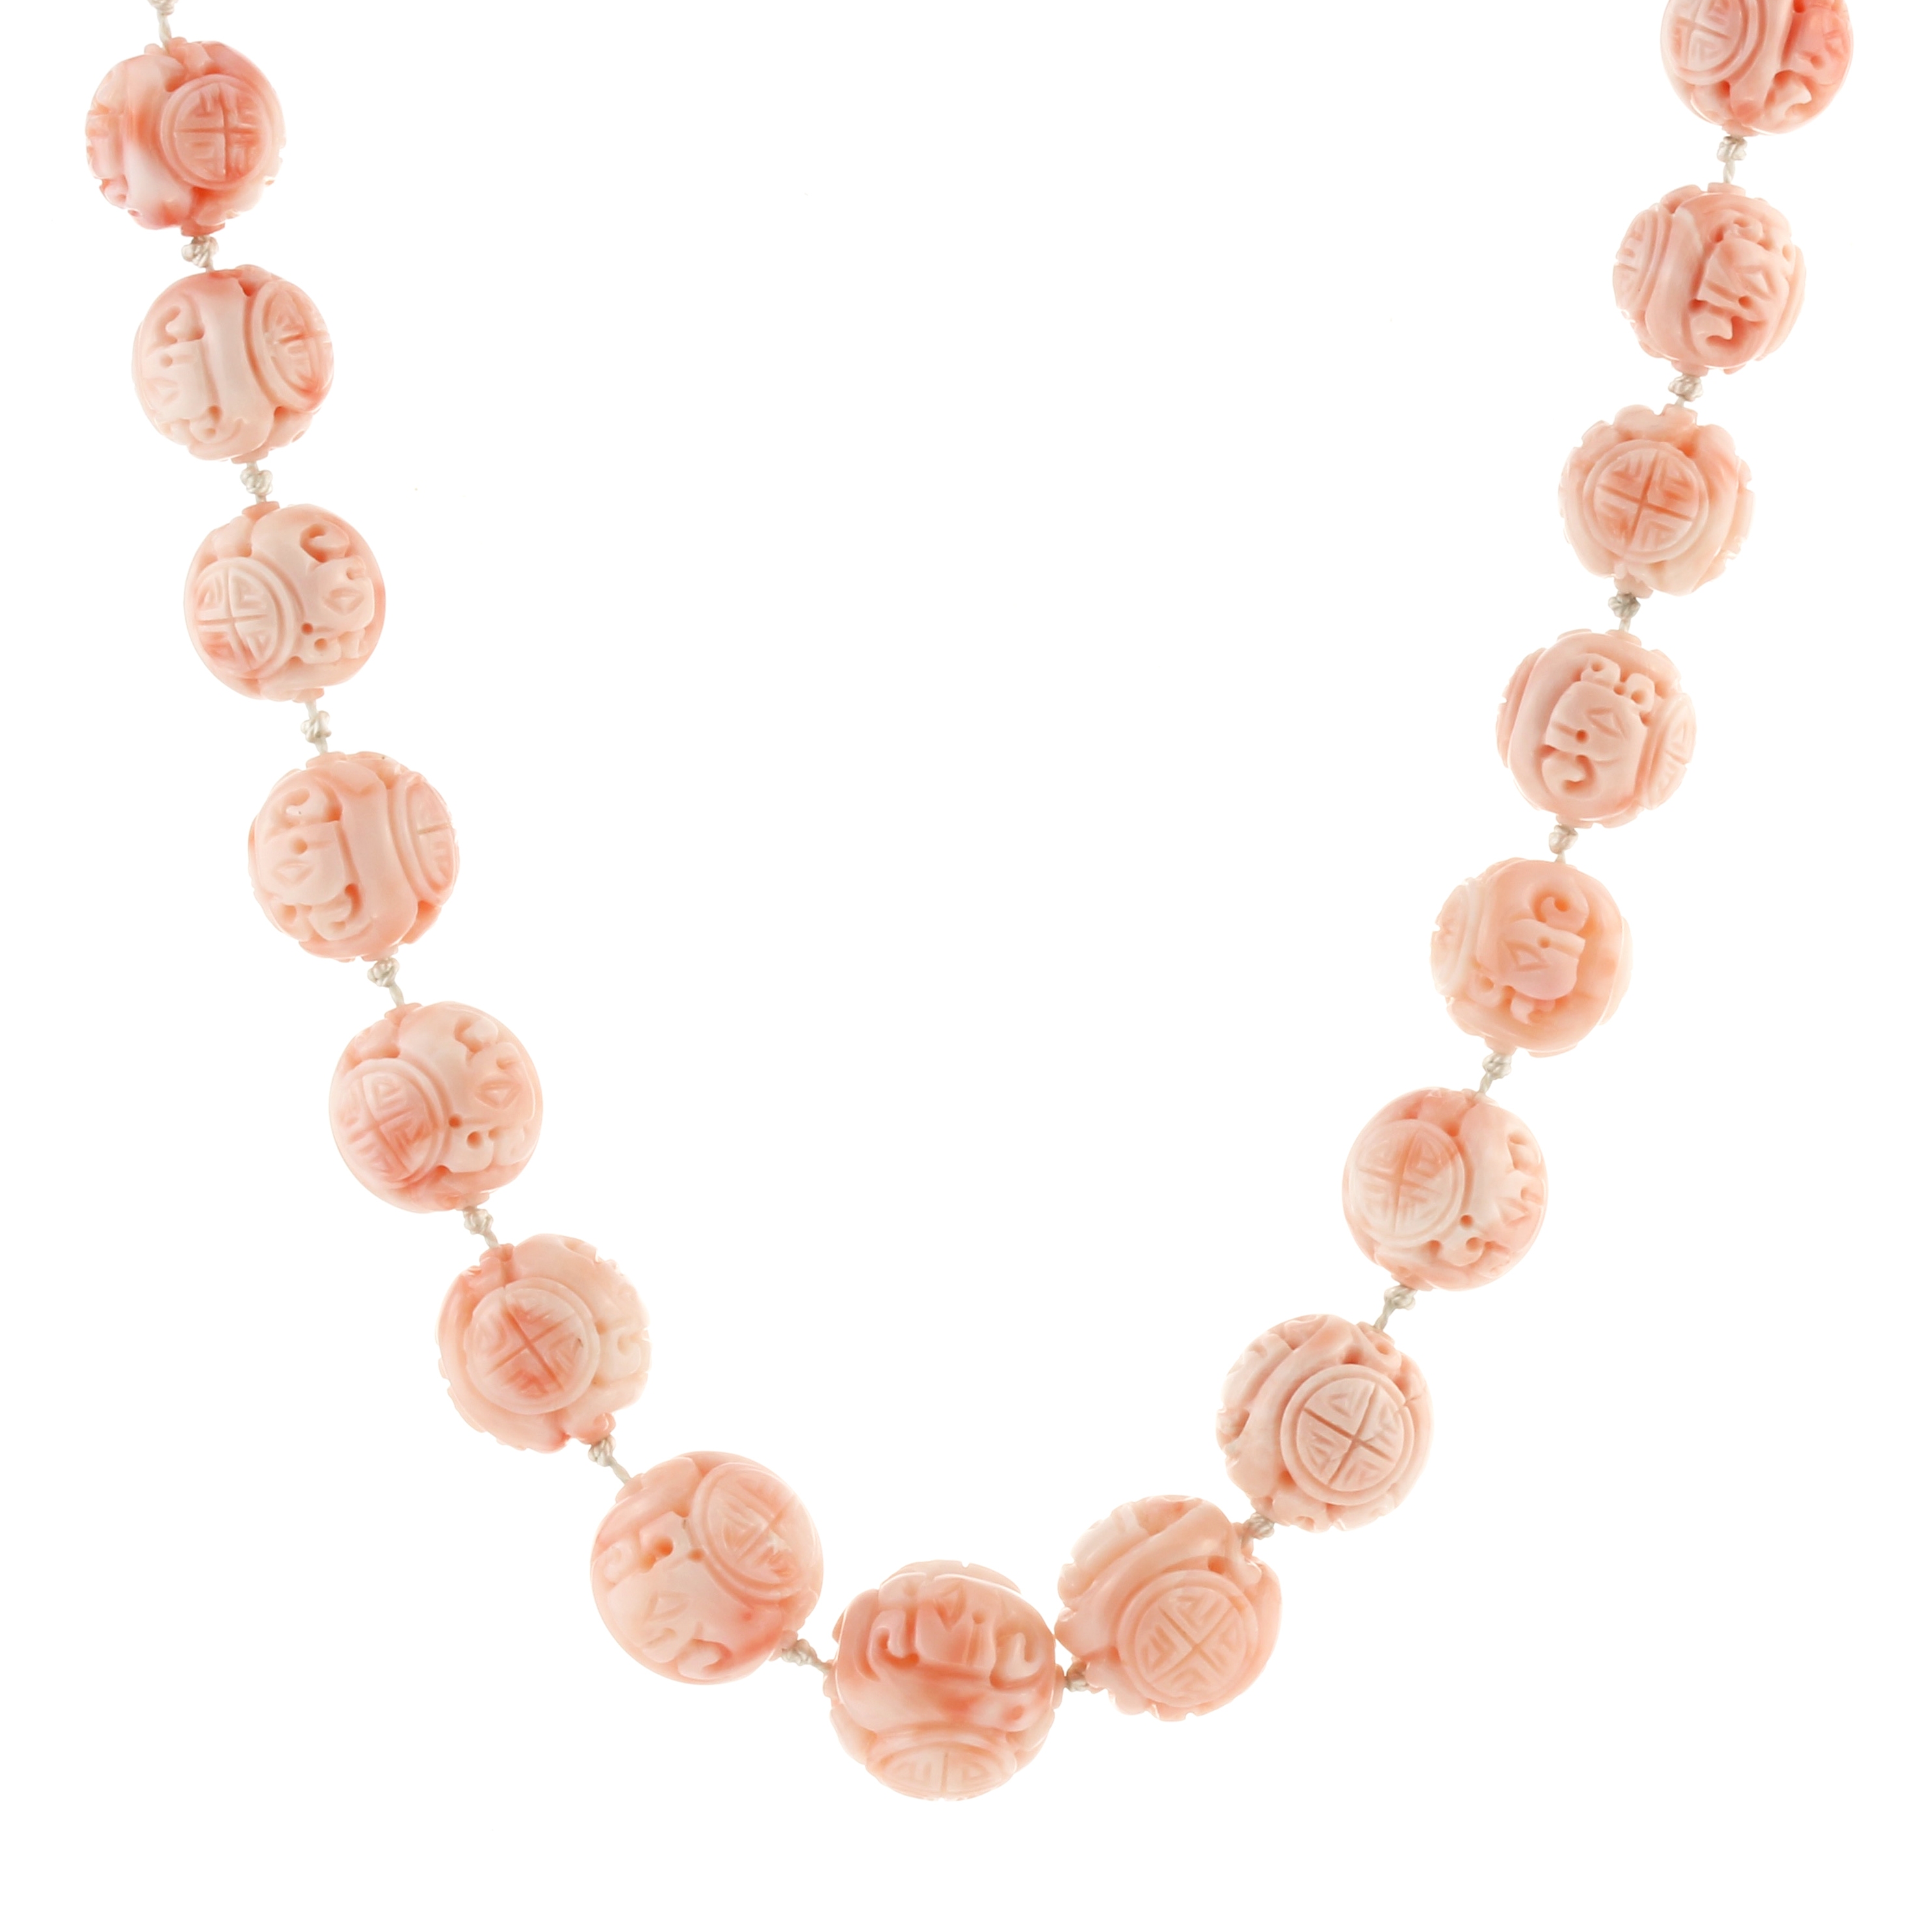 Los 52 - A CHINESE CORAL BEAD NECKLACE comprising a single row of thirty two graduated carved coral beads